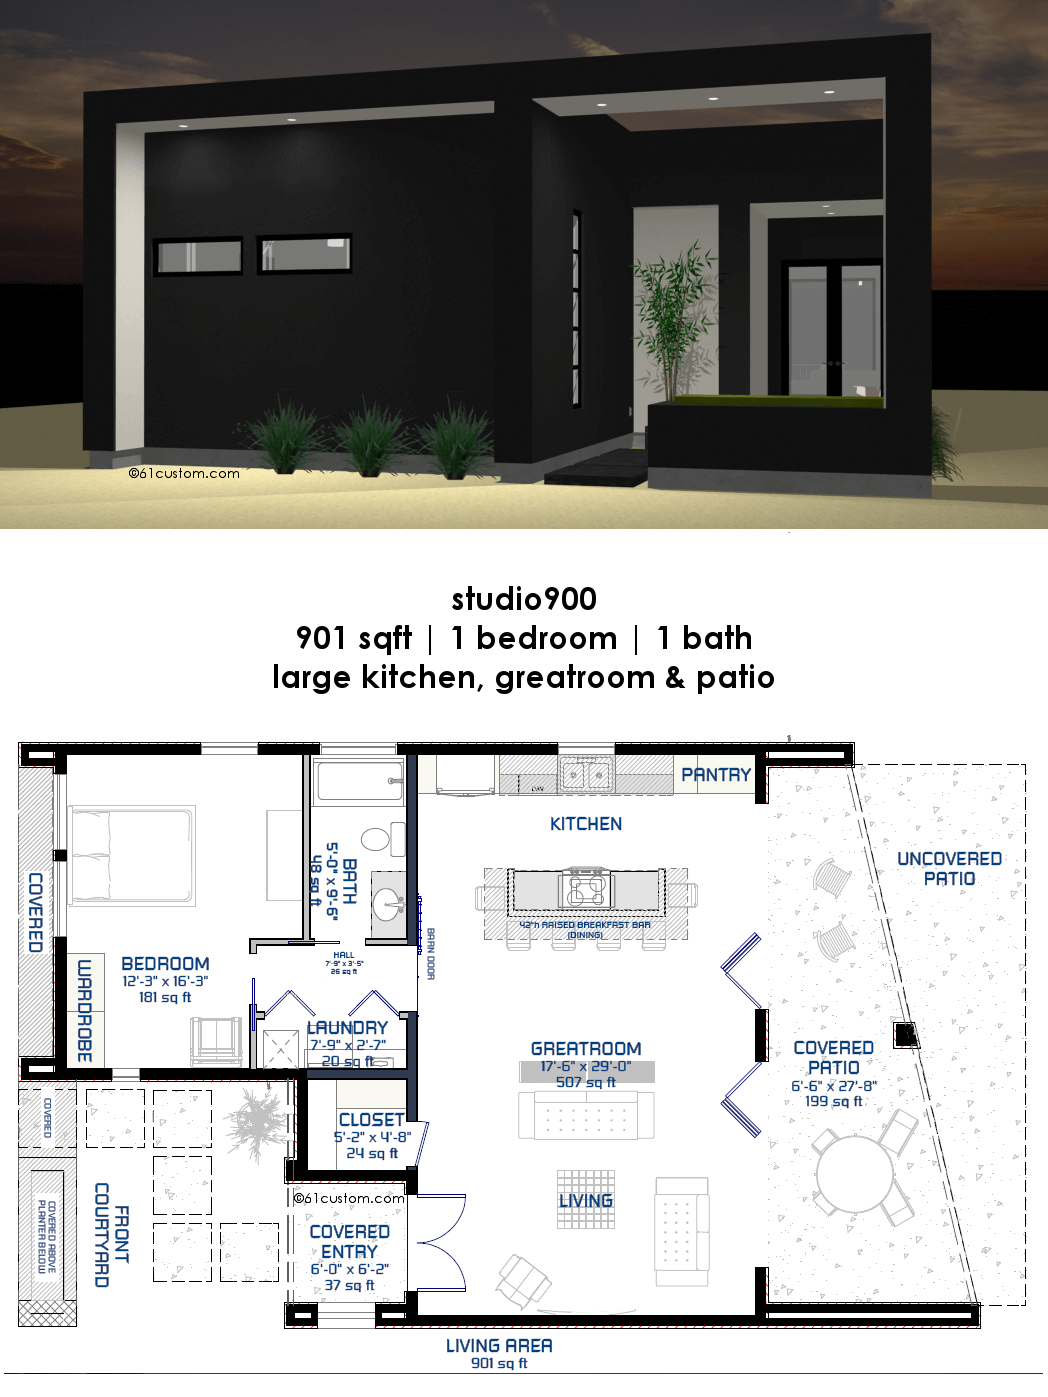 Studio900 small modern house plan with courtyard 61custom for Modern home plans